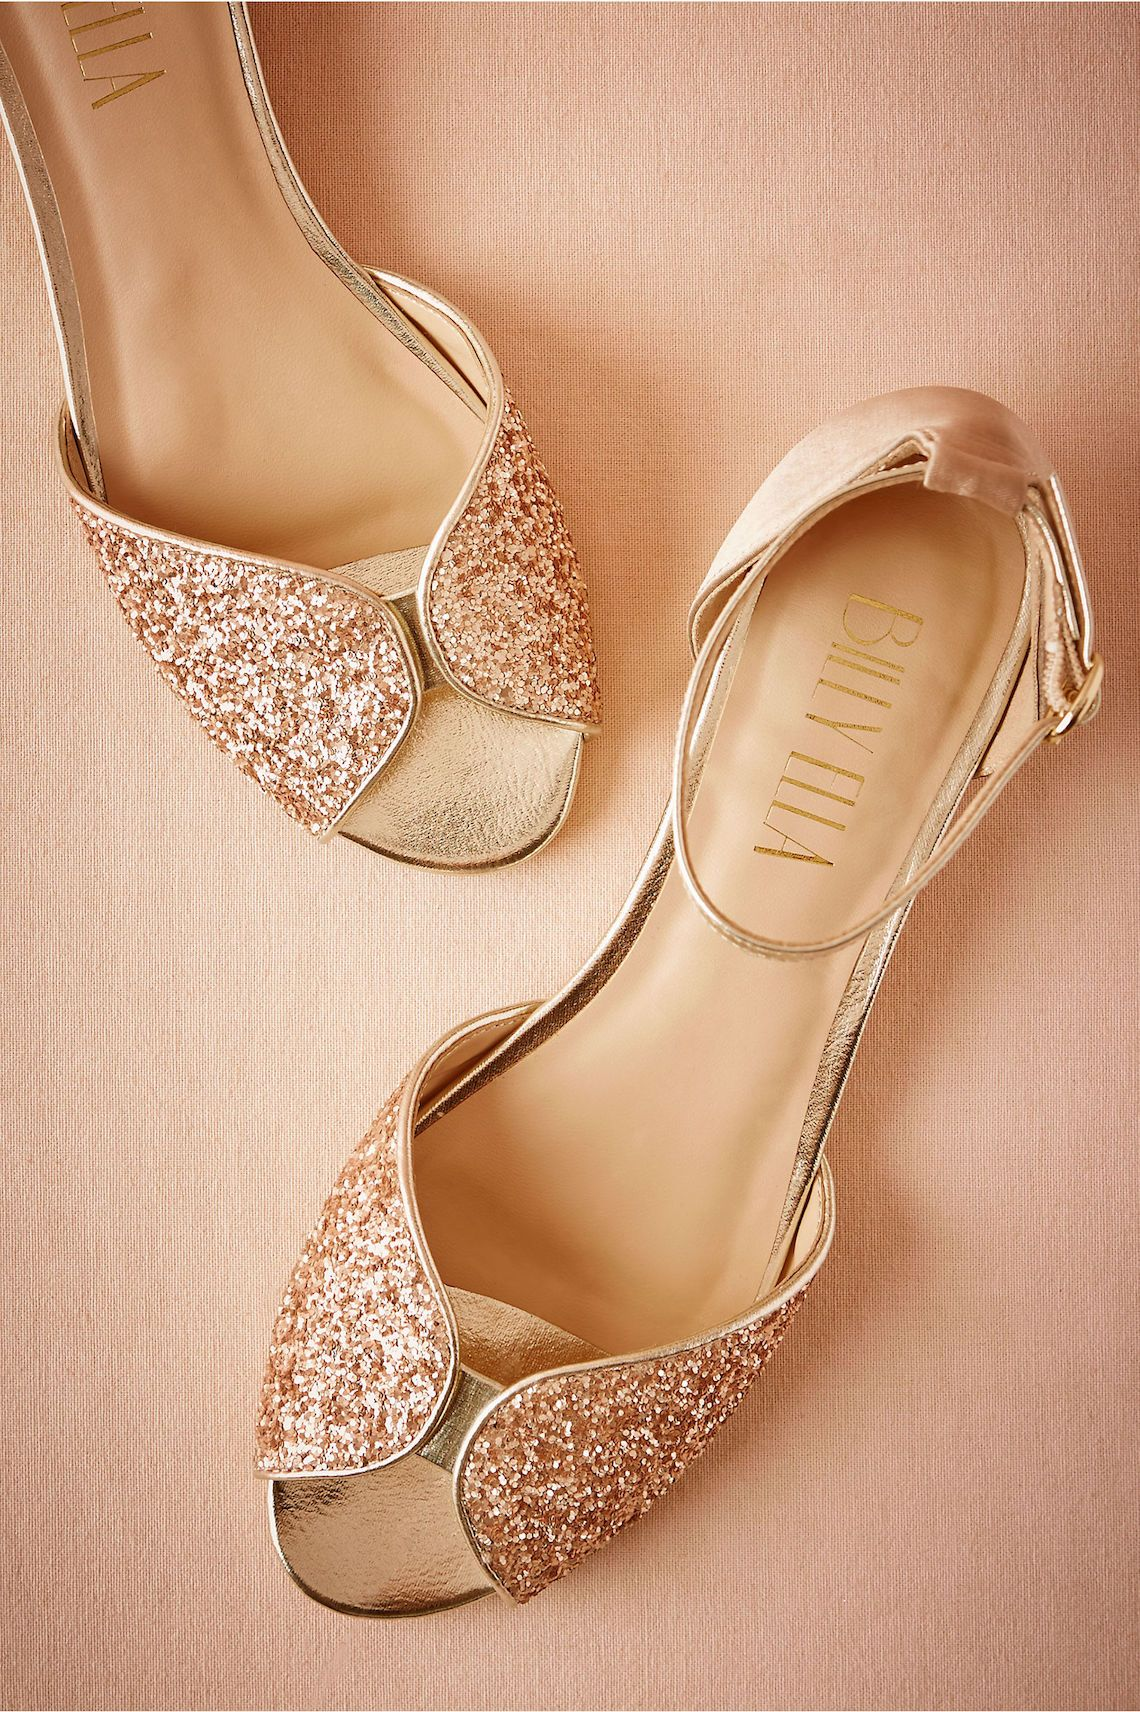 10 Flat Wedding Shoes (That Are Just As Chic As Heels)  8805d4b0db99